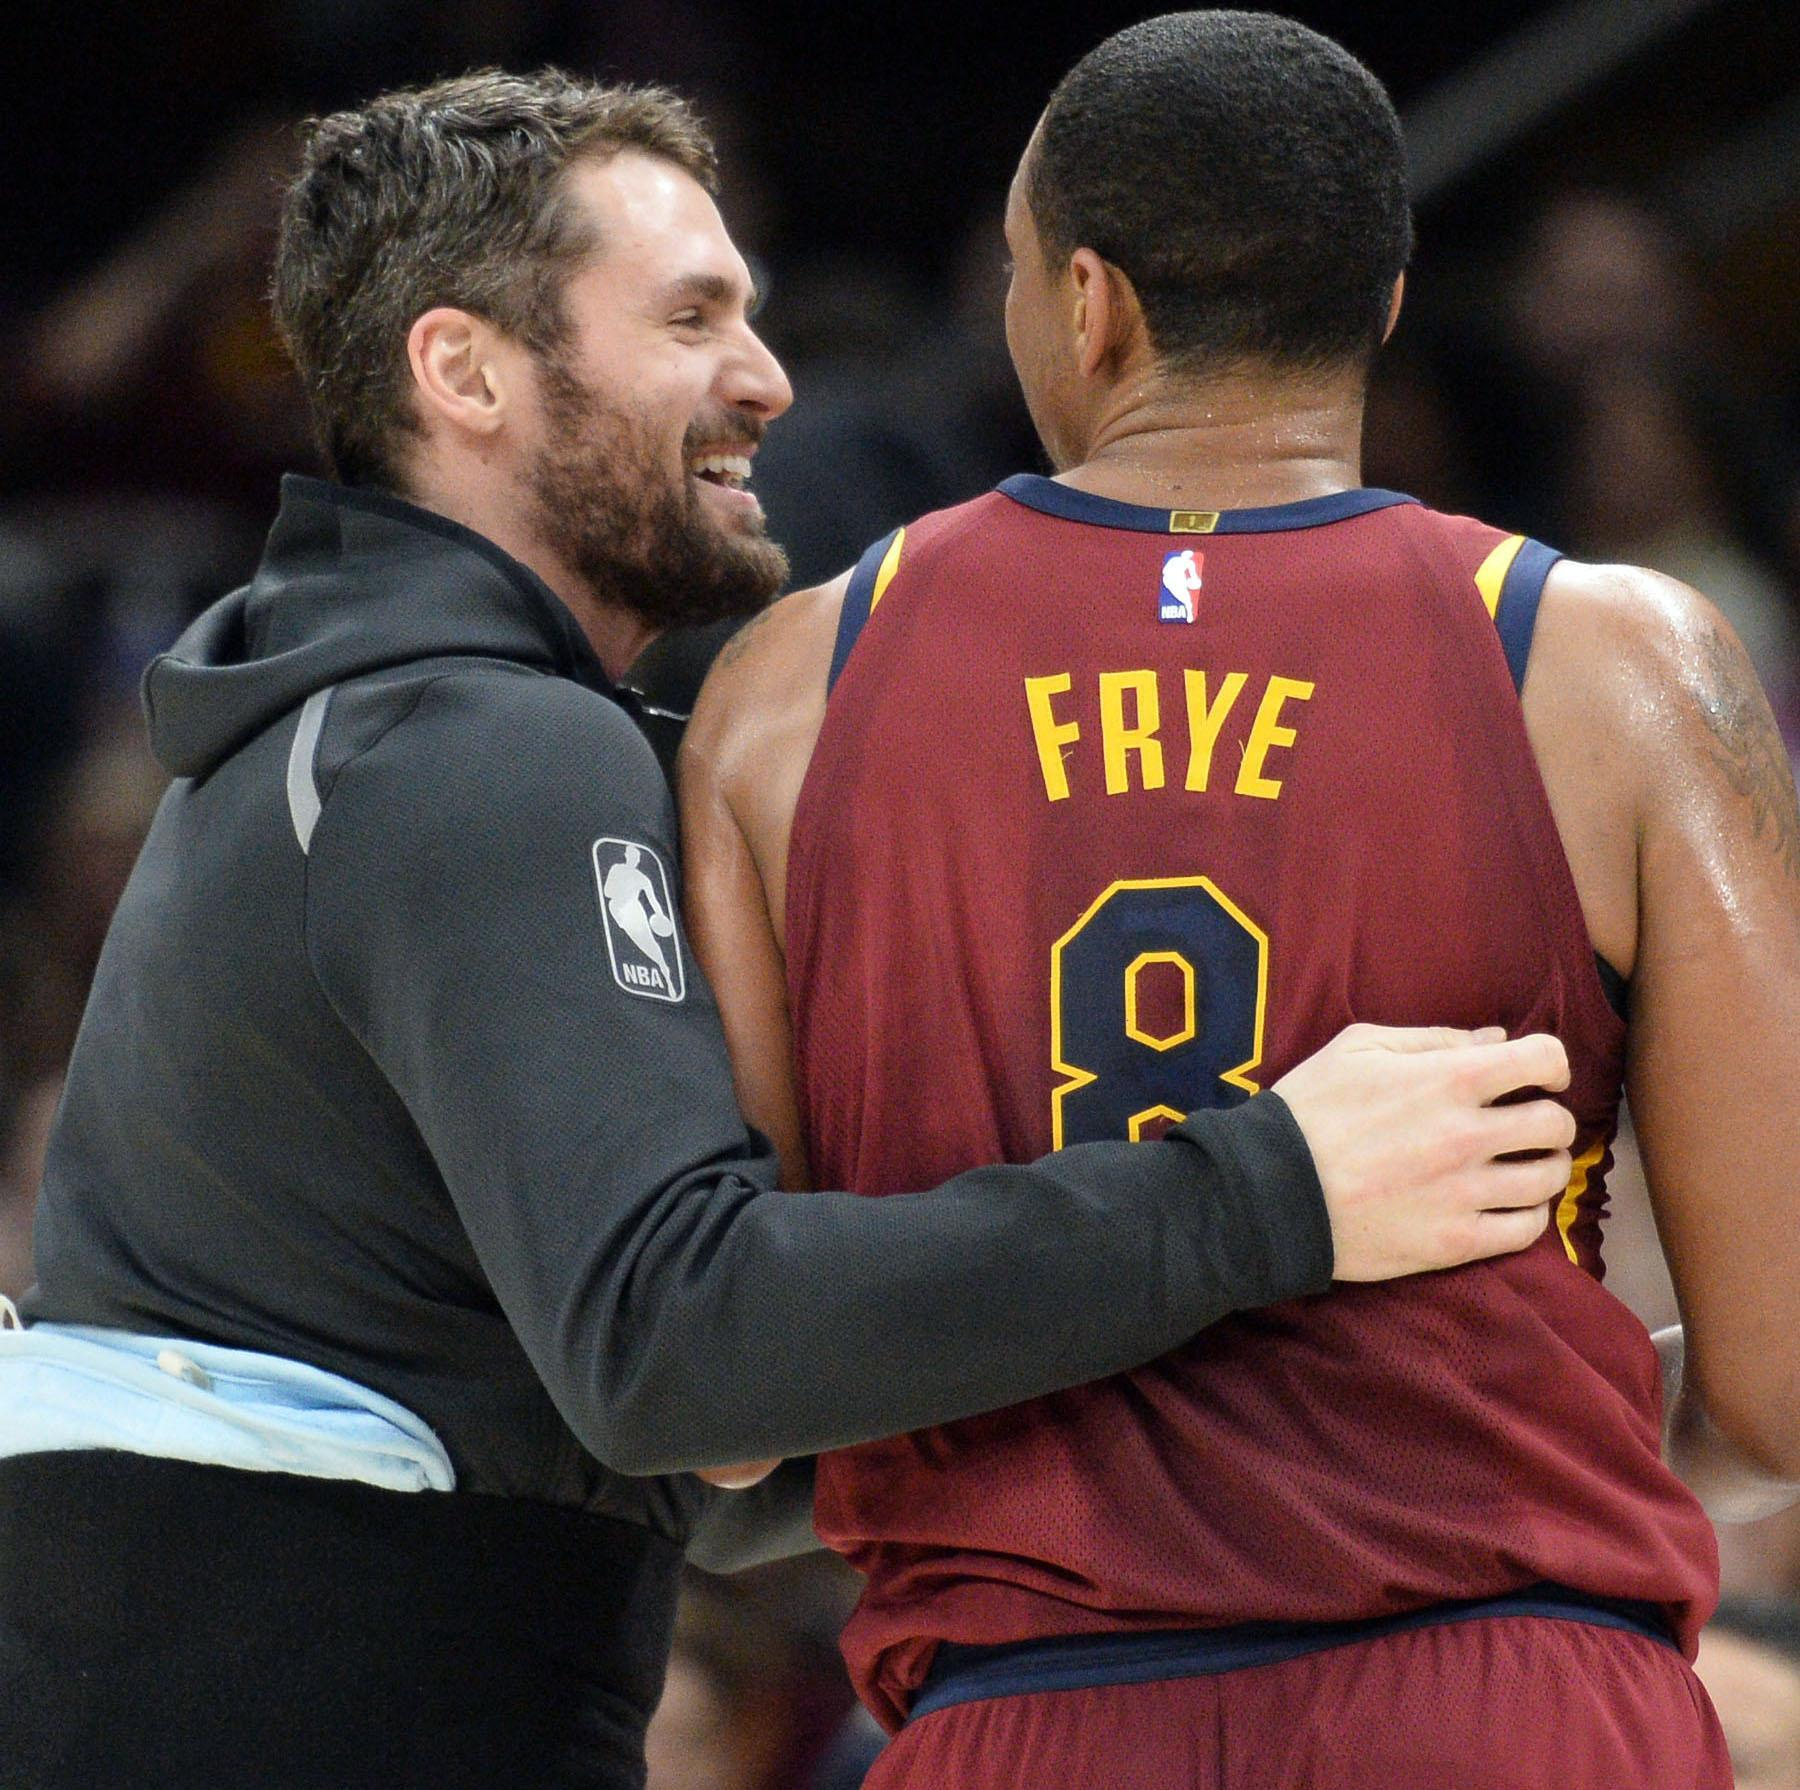 Kevin Love to Miss Tonight's Game vs. Pistons With Latest Injury